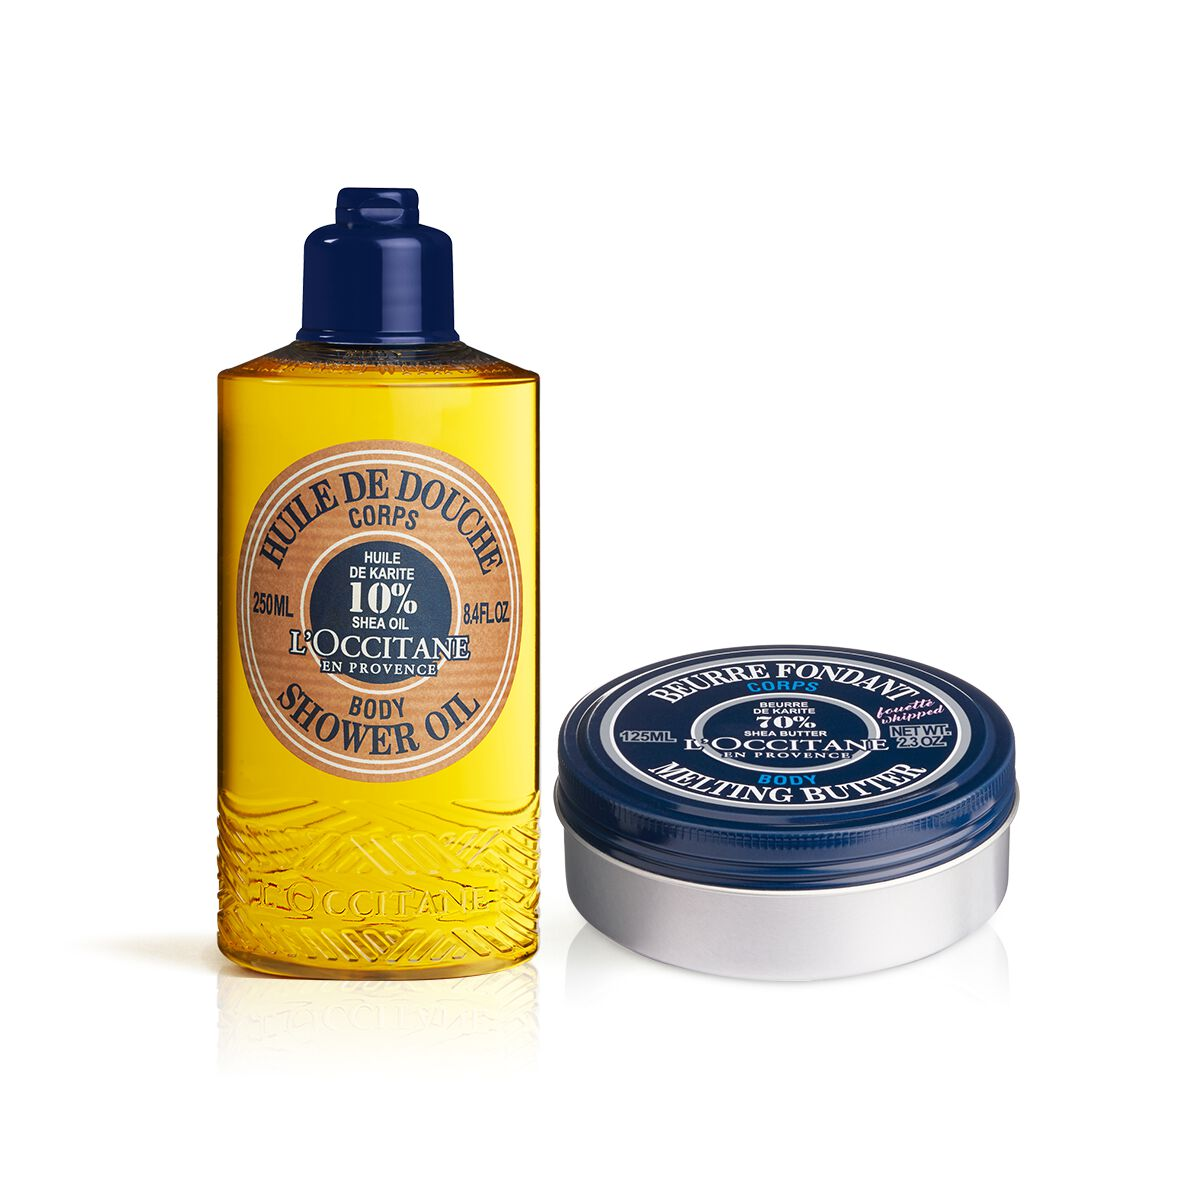 Moisturizing Body Duo from L'OCCITANE